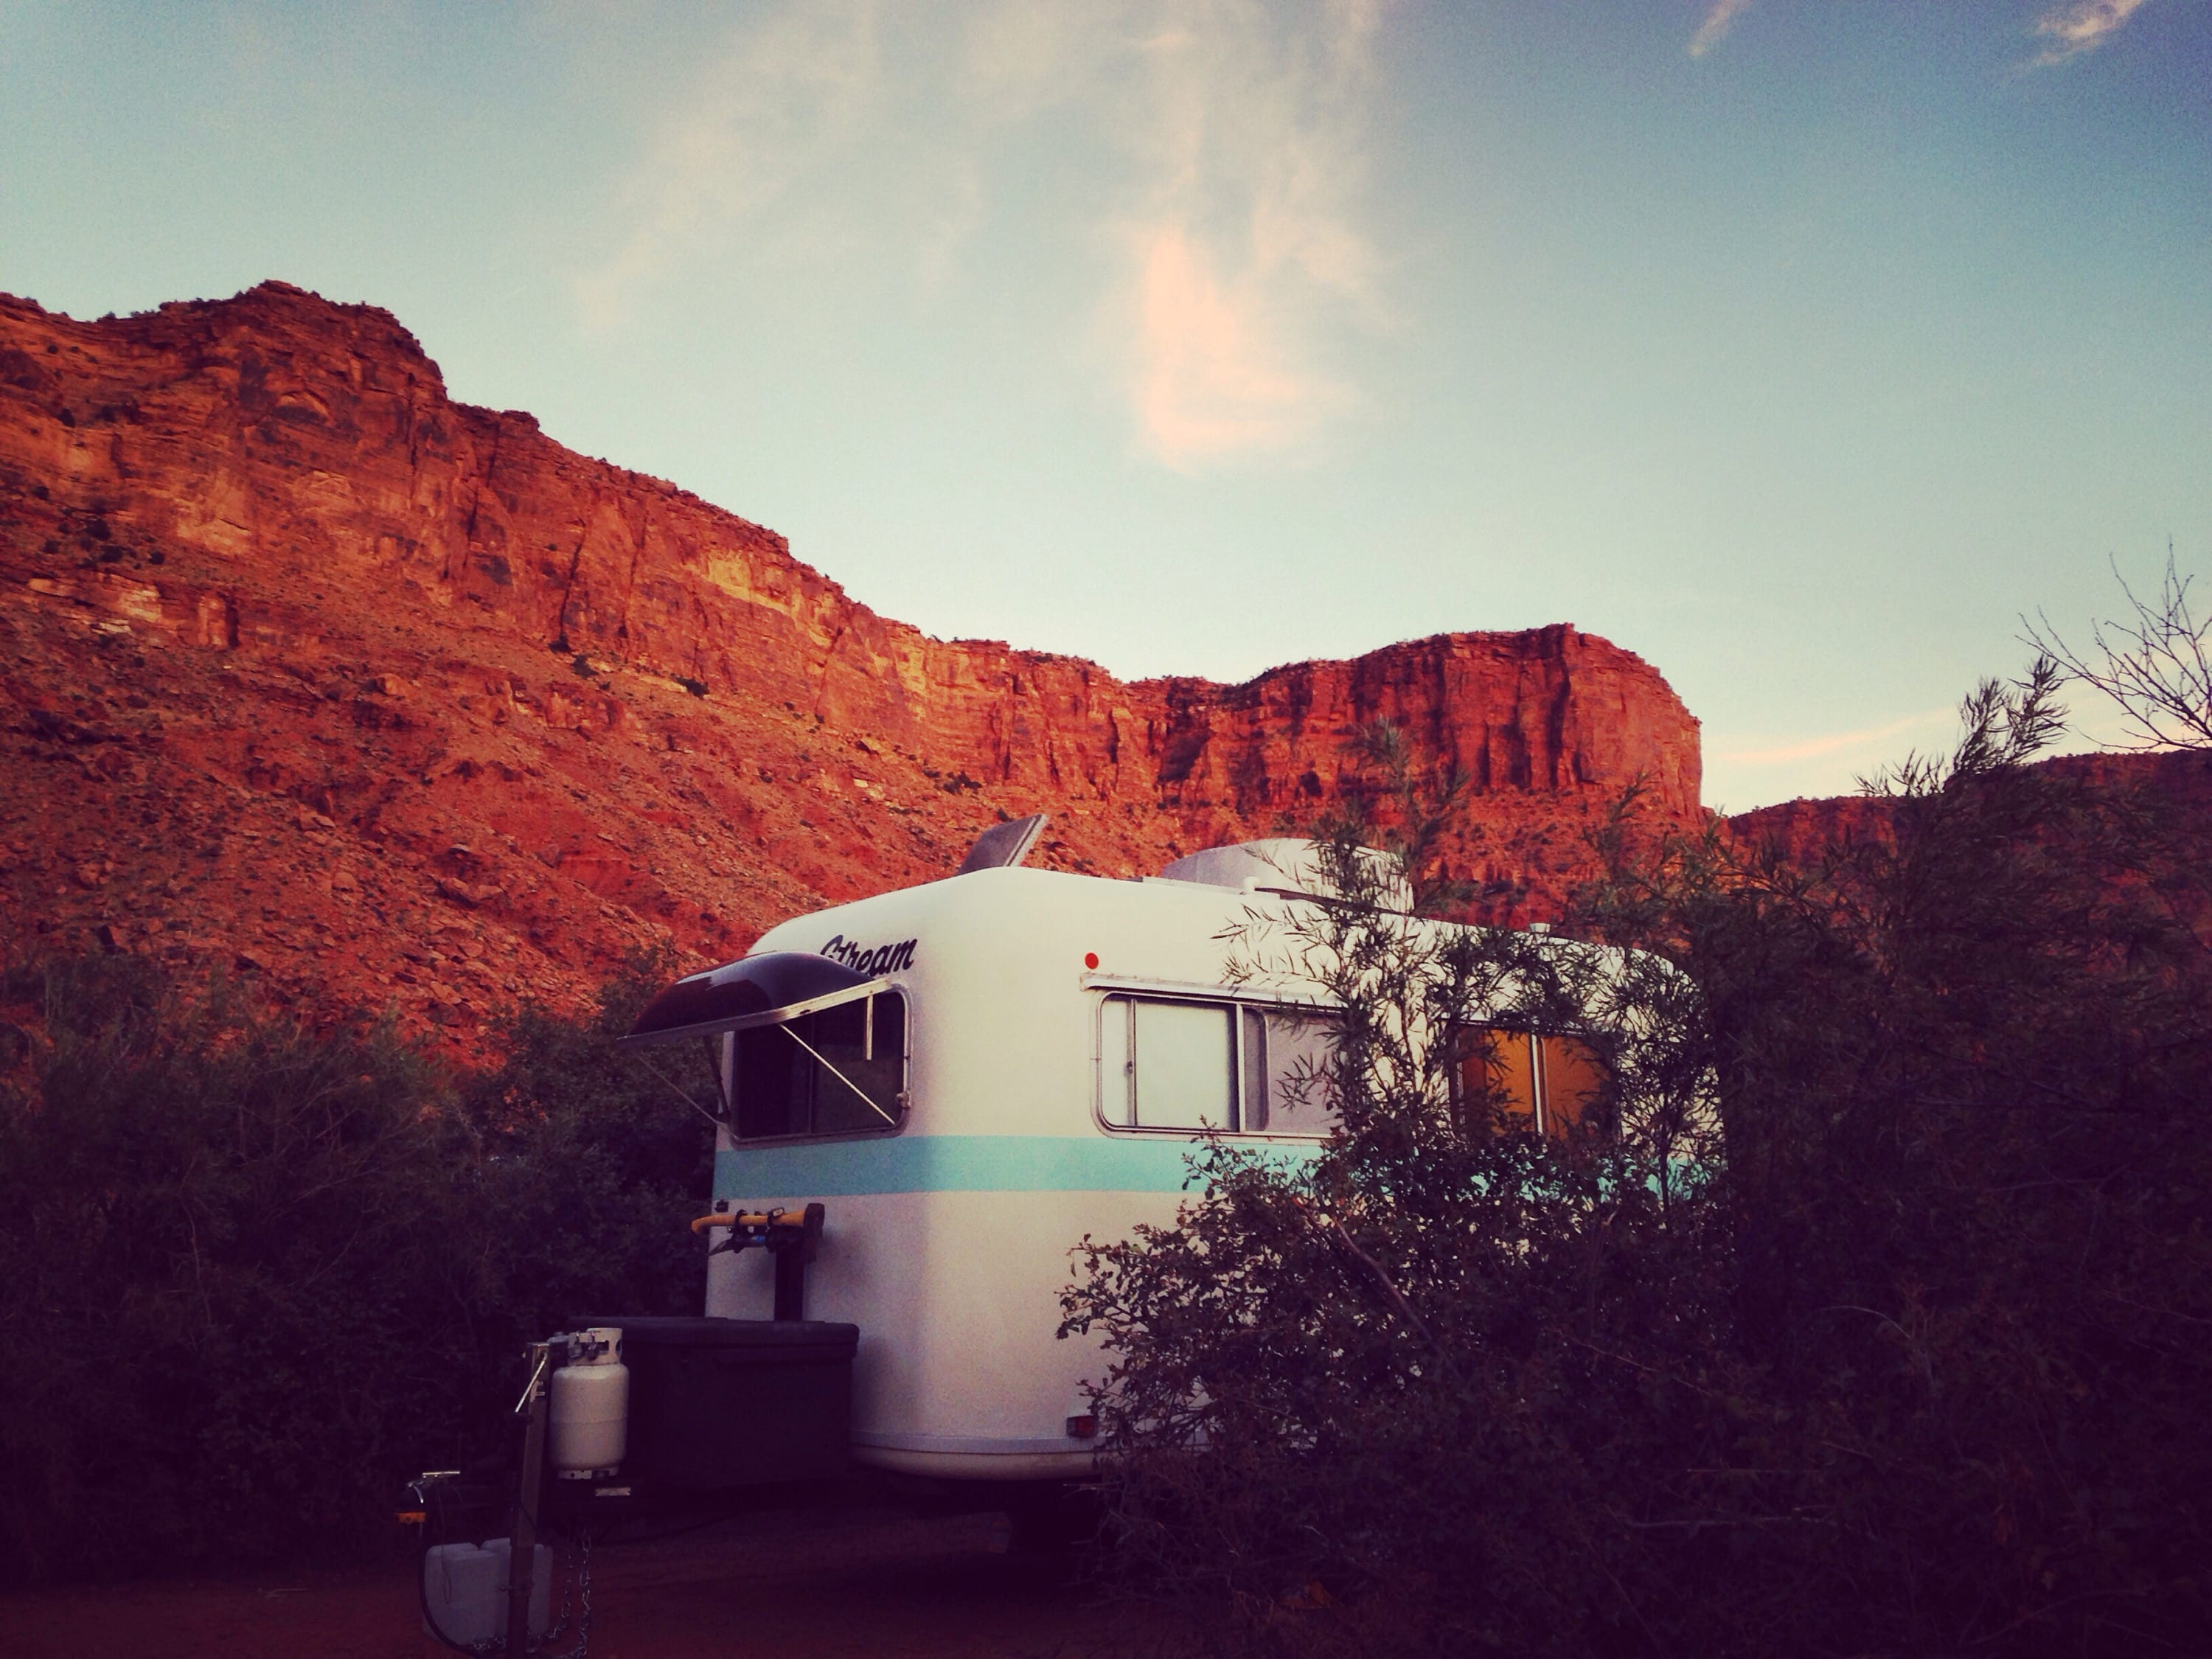 Boondocking in Big Bend Campground – Moab, UT